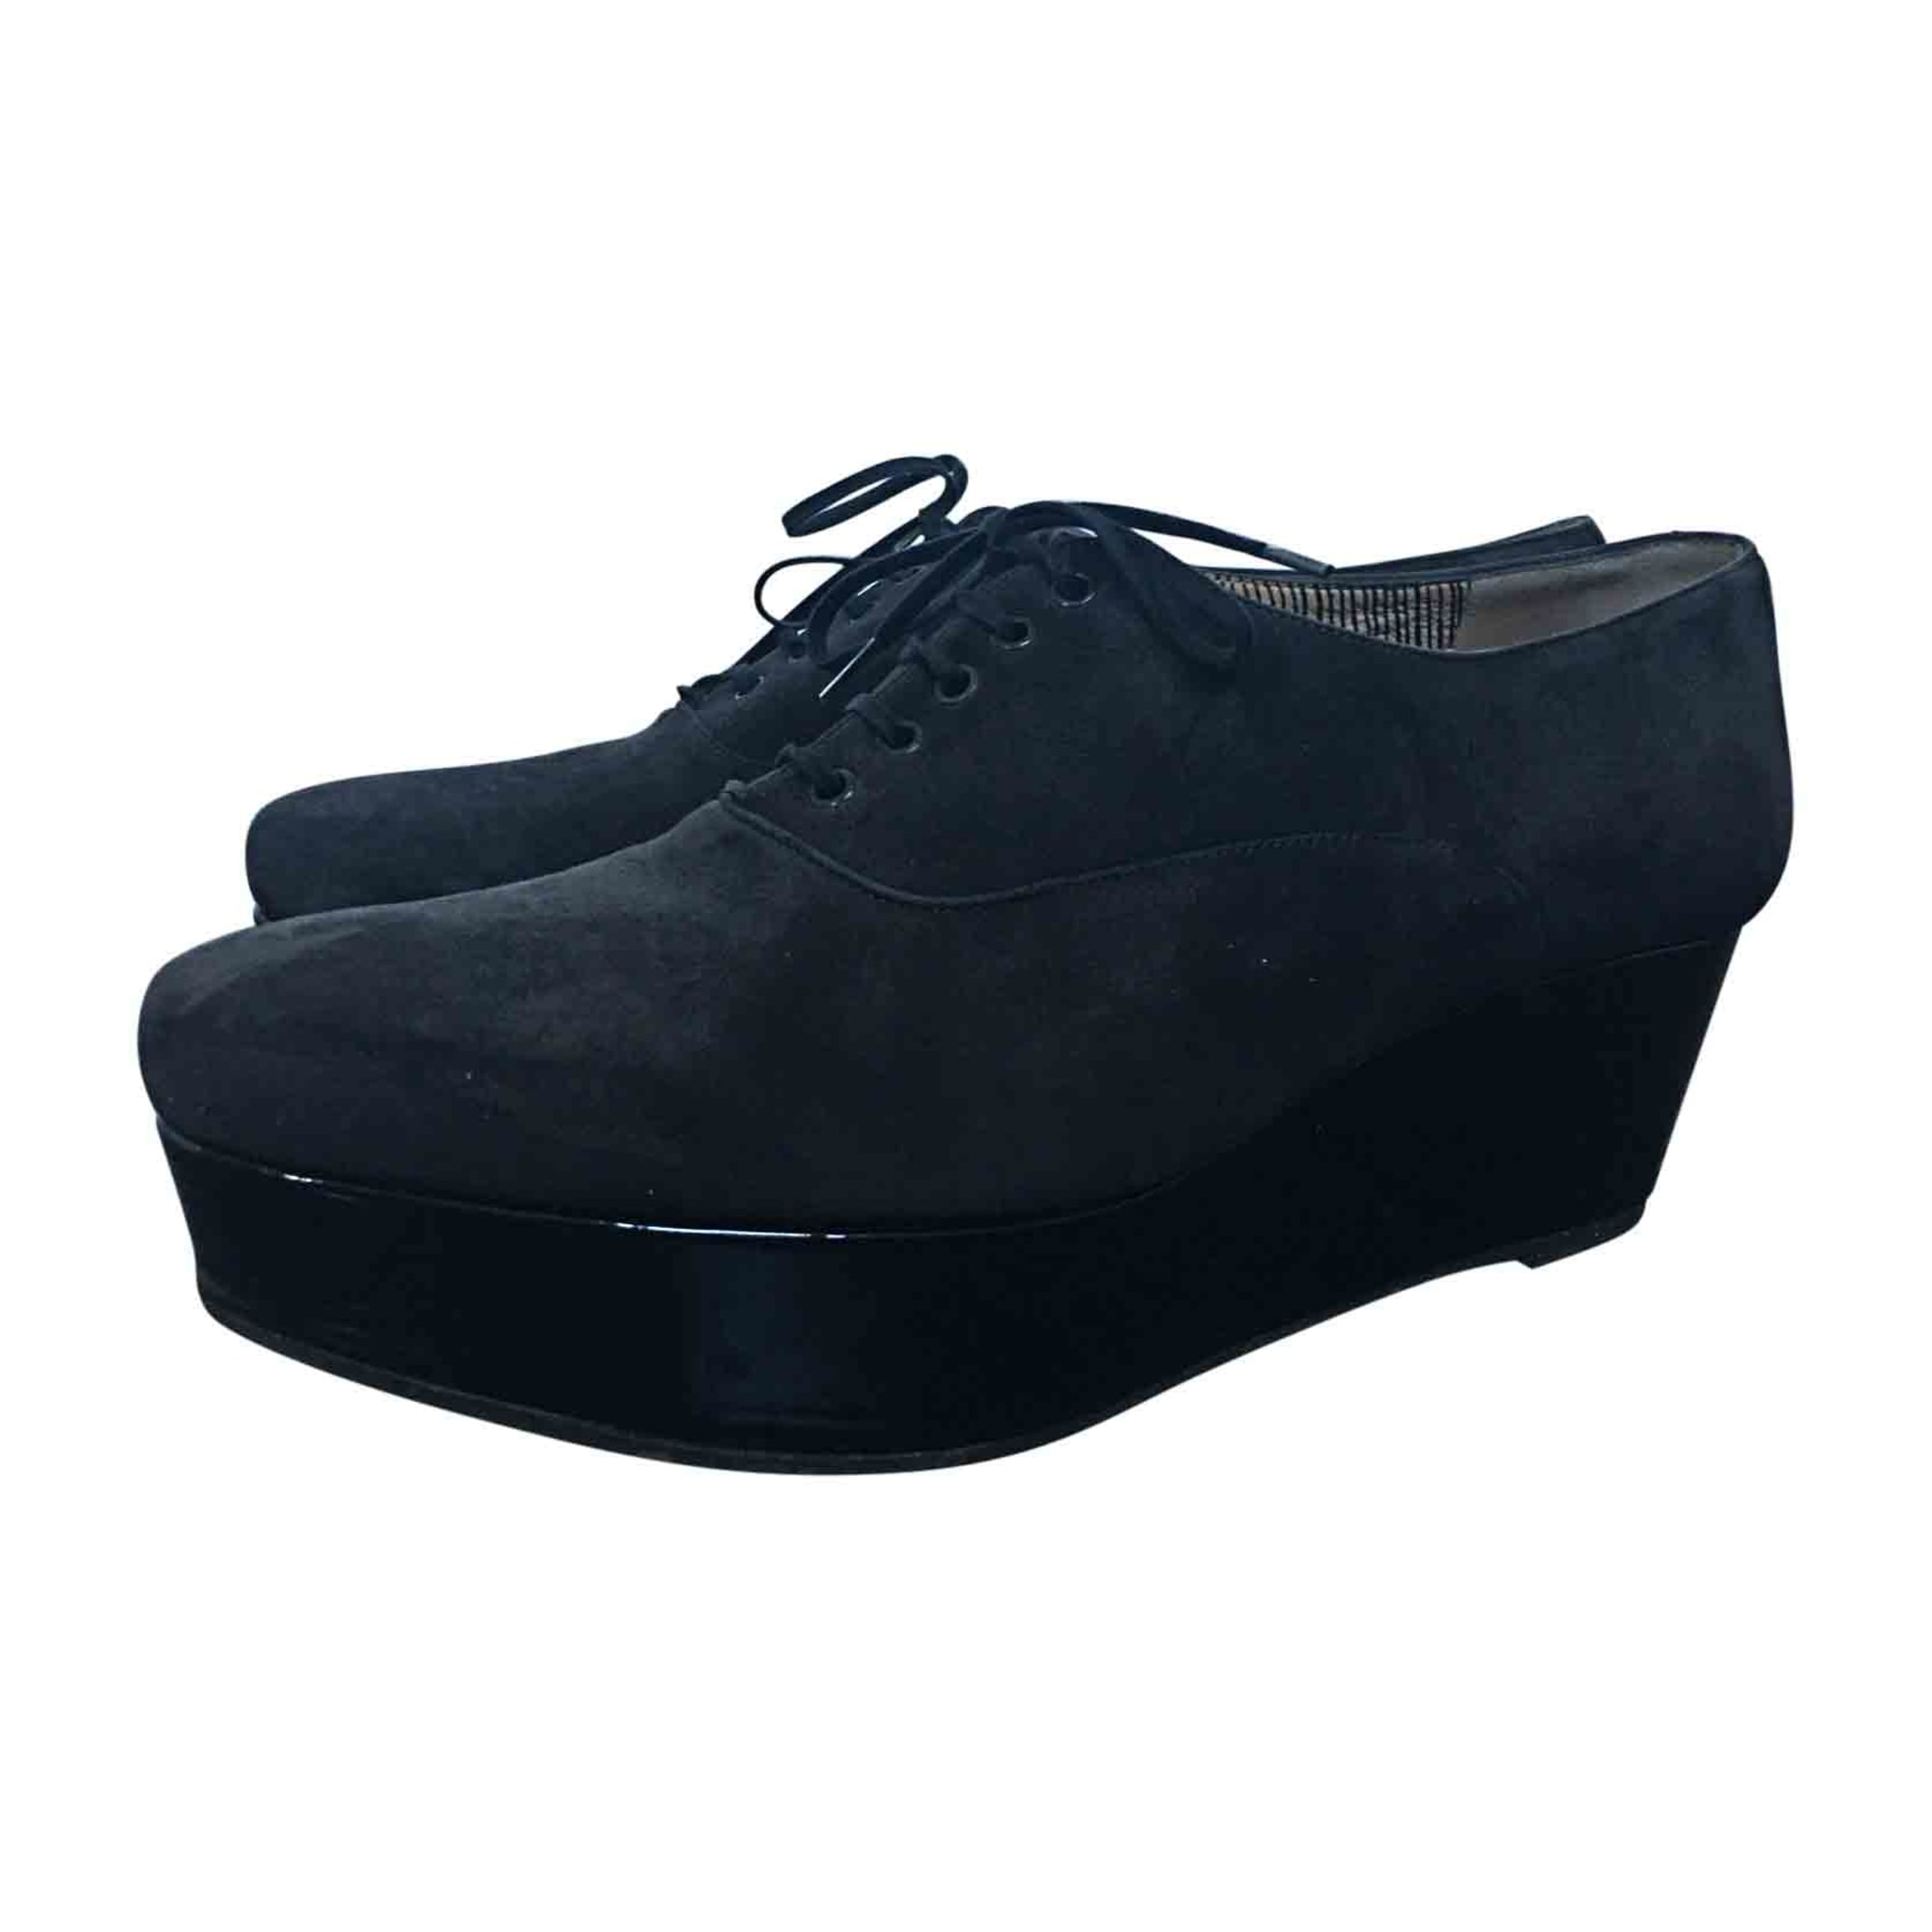 Chaussures à lacets  ROBERT CLERGERIE Gris, anthracite